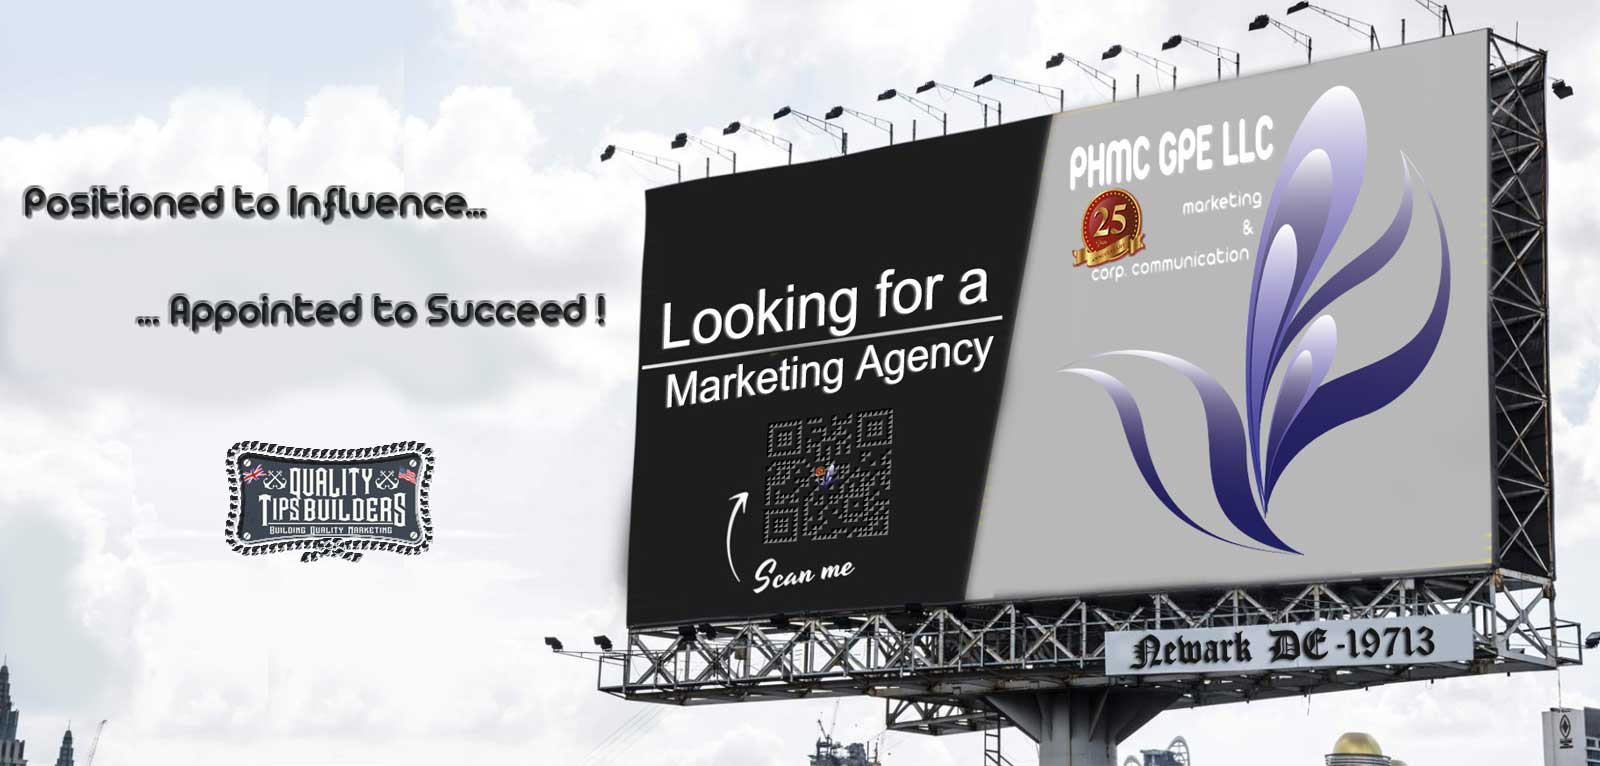 Agency_Site ✔ Offer & Solutions | ::: PHMC GPE LLC :::: Marketing & Corp. Communication Agency